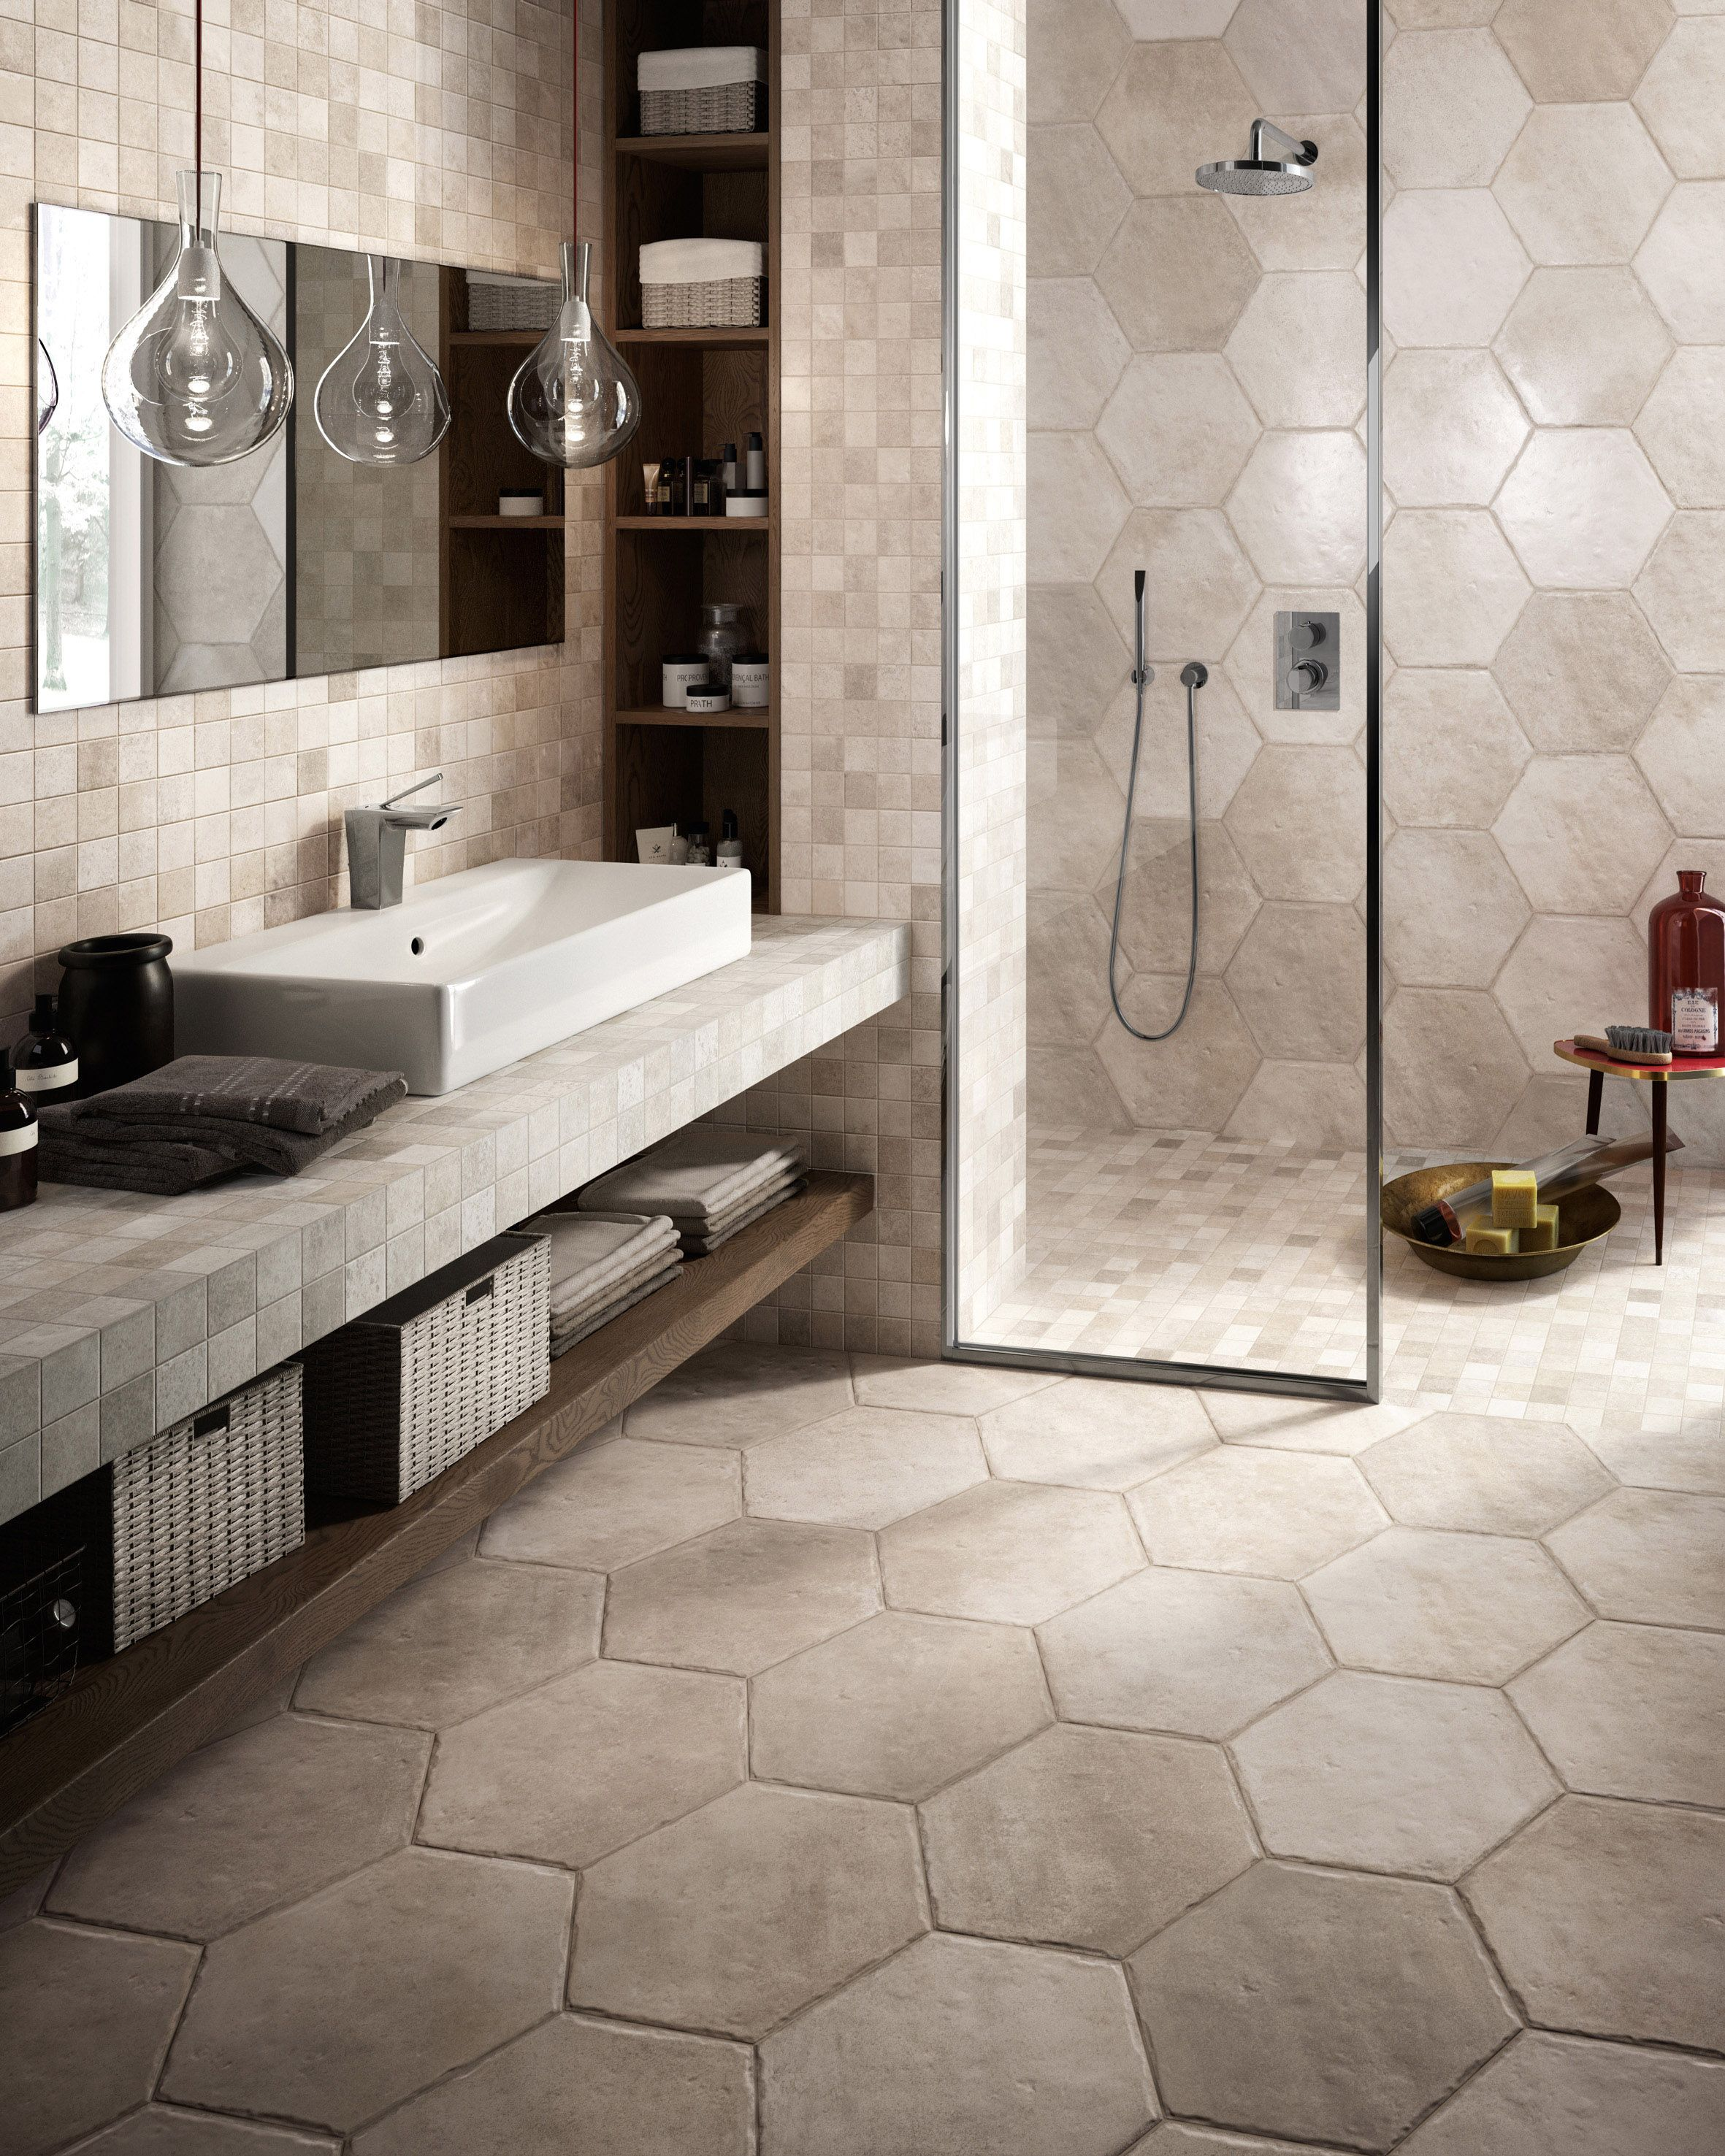 tiles amazing nt hexagonal restroom house stone cut bathroom home fl grey hexagon plans architecture